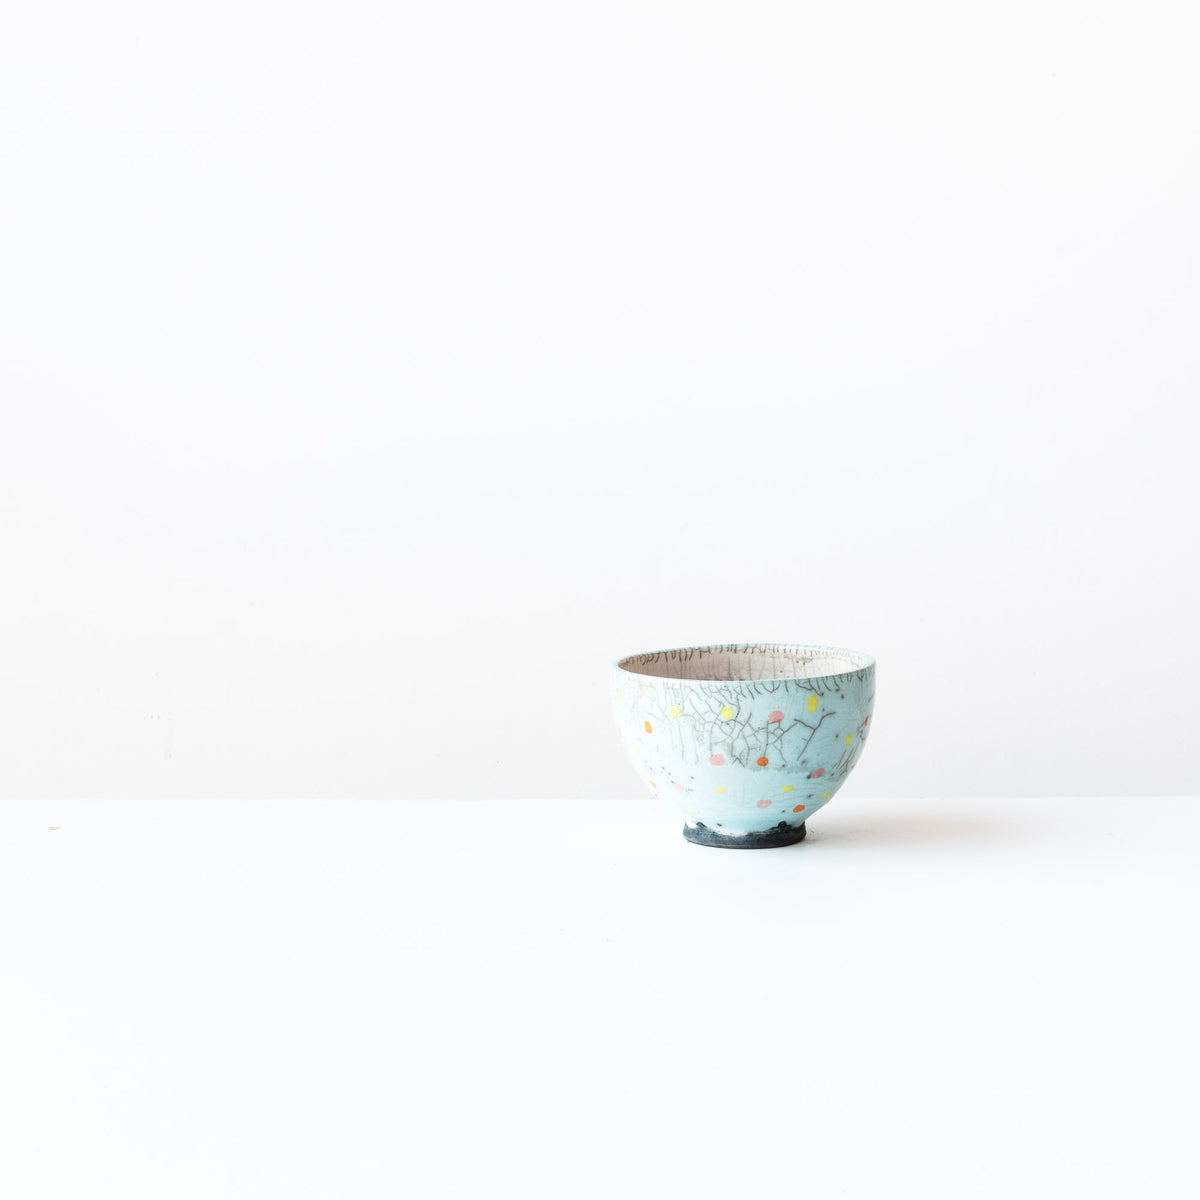 Turquoise Handmade Raku Tea Bowl with Dots - Sold by Chic & Basta